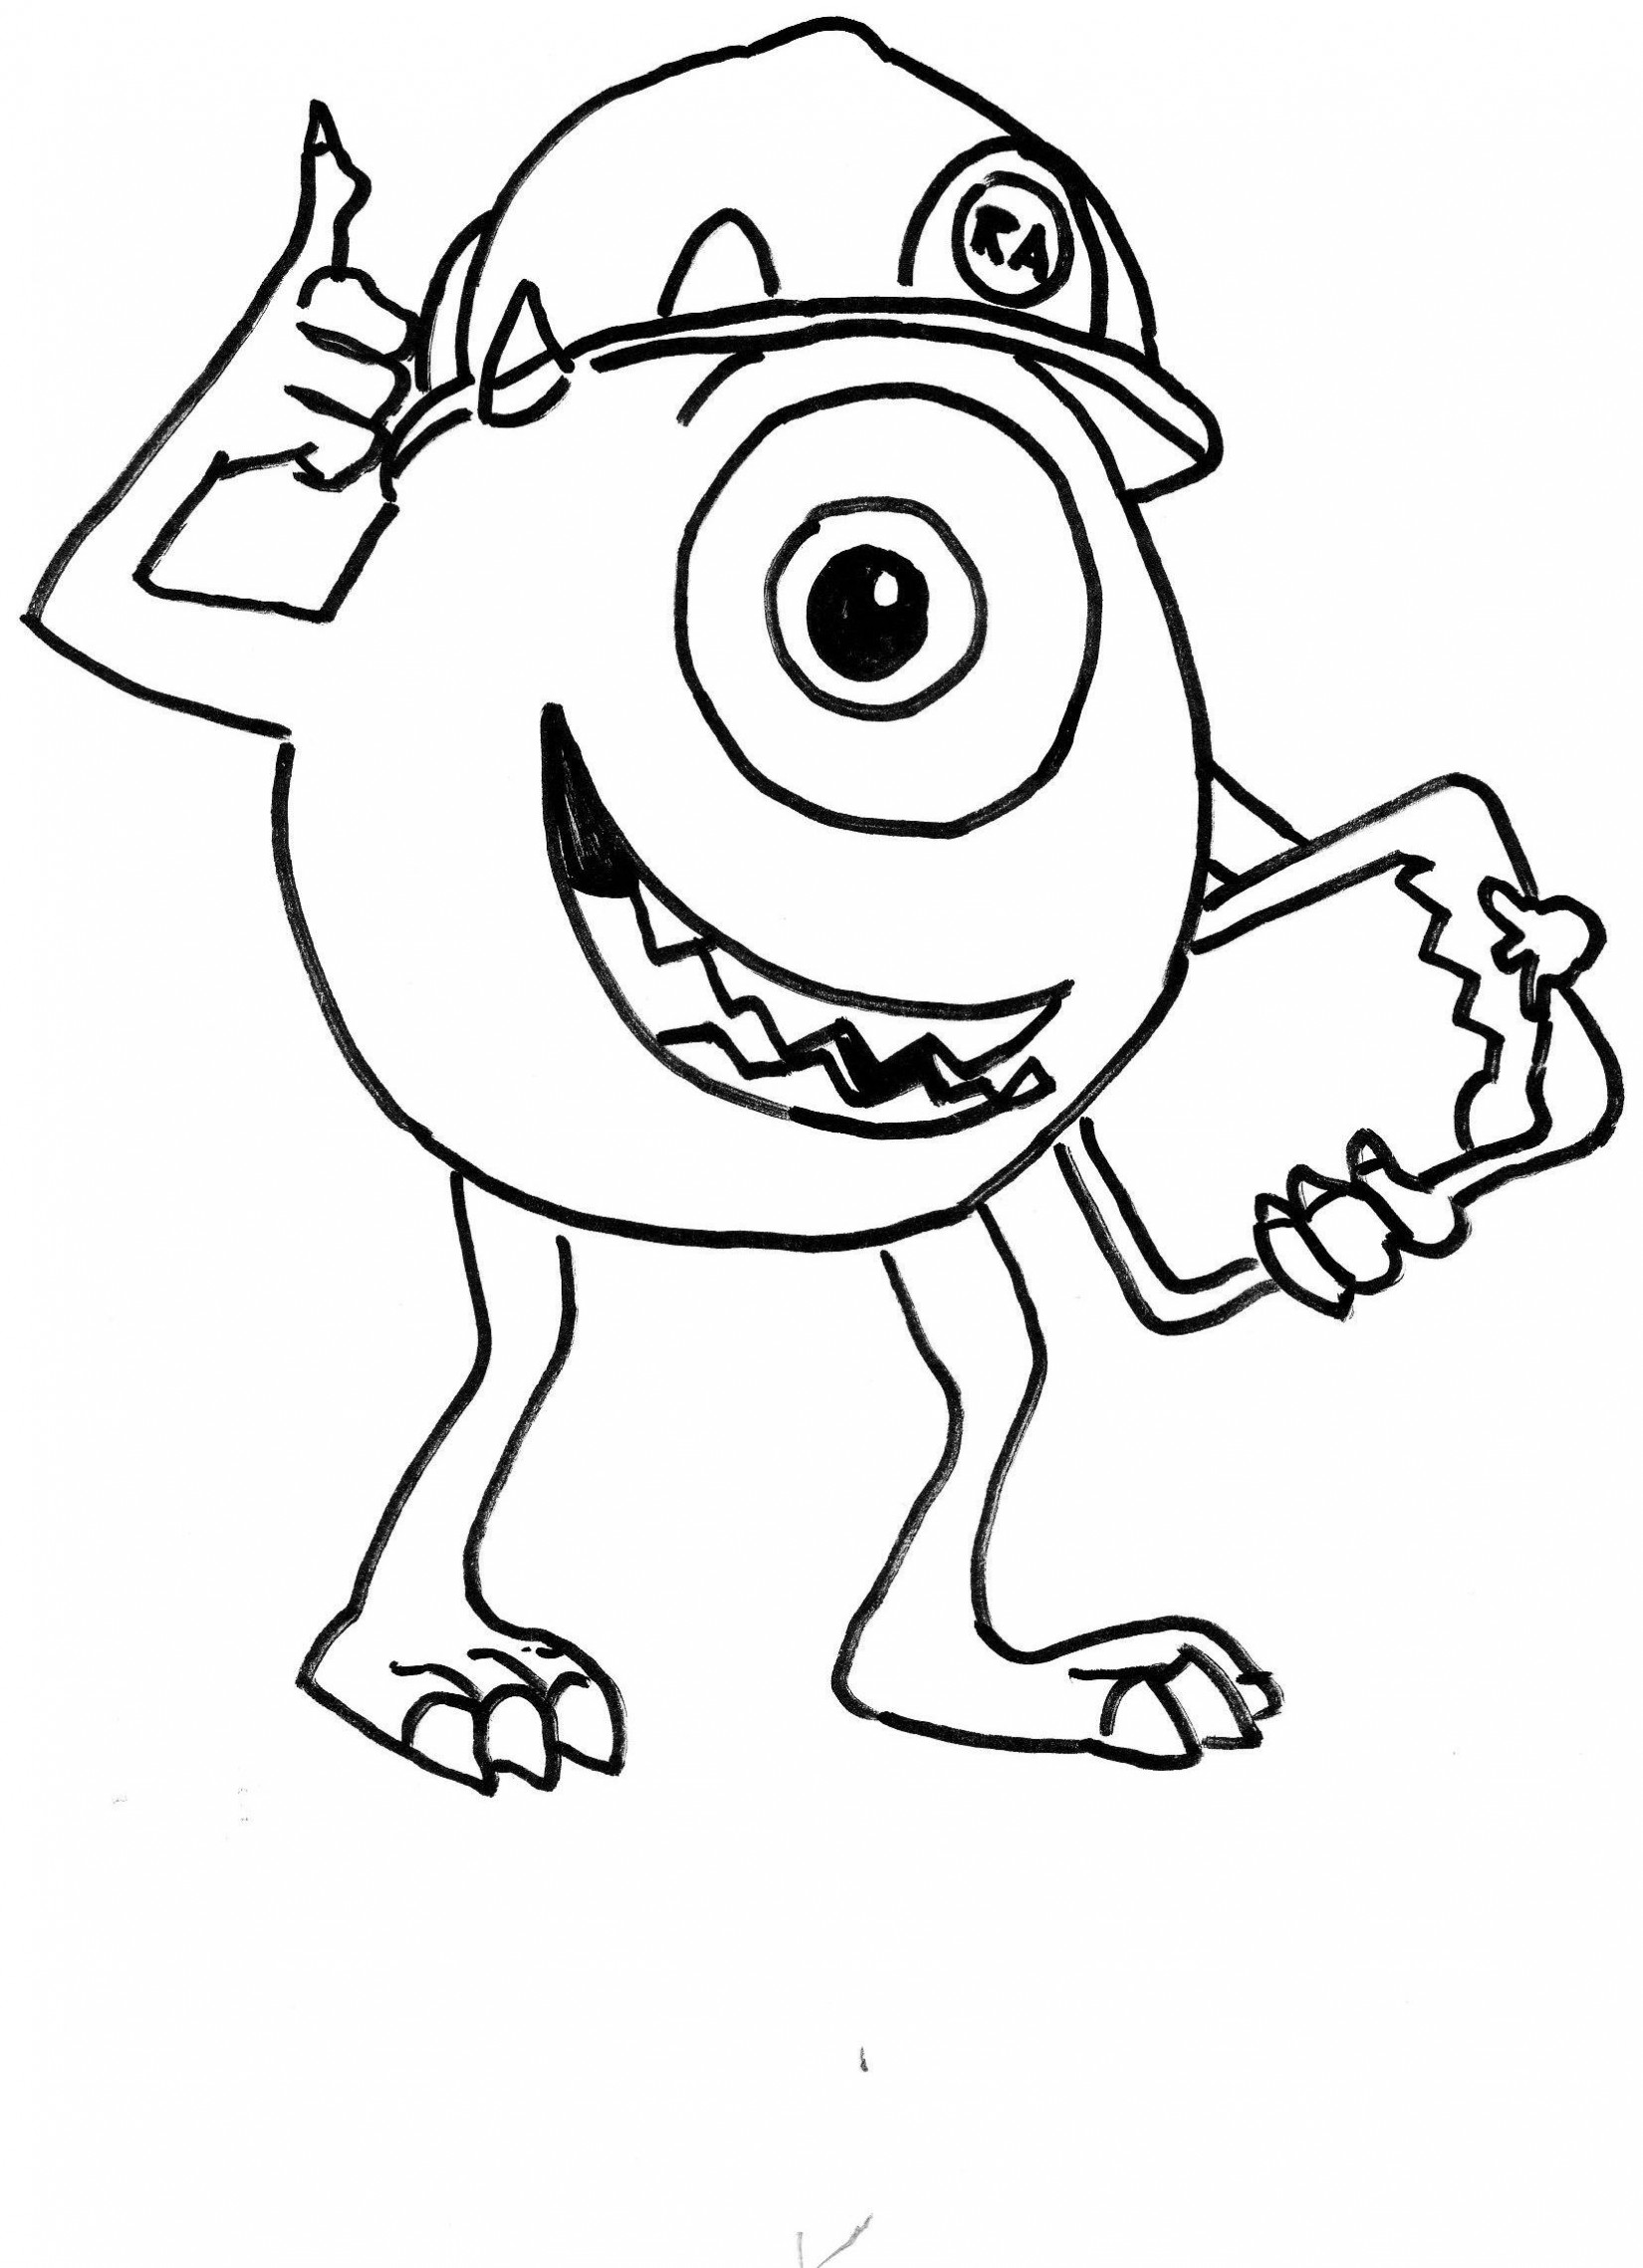 1650x2277 Free Cartoon Coloring Pages To Print Printable For Fancy Page Kids